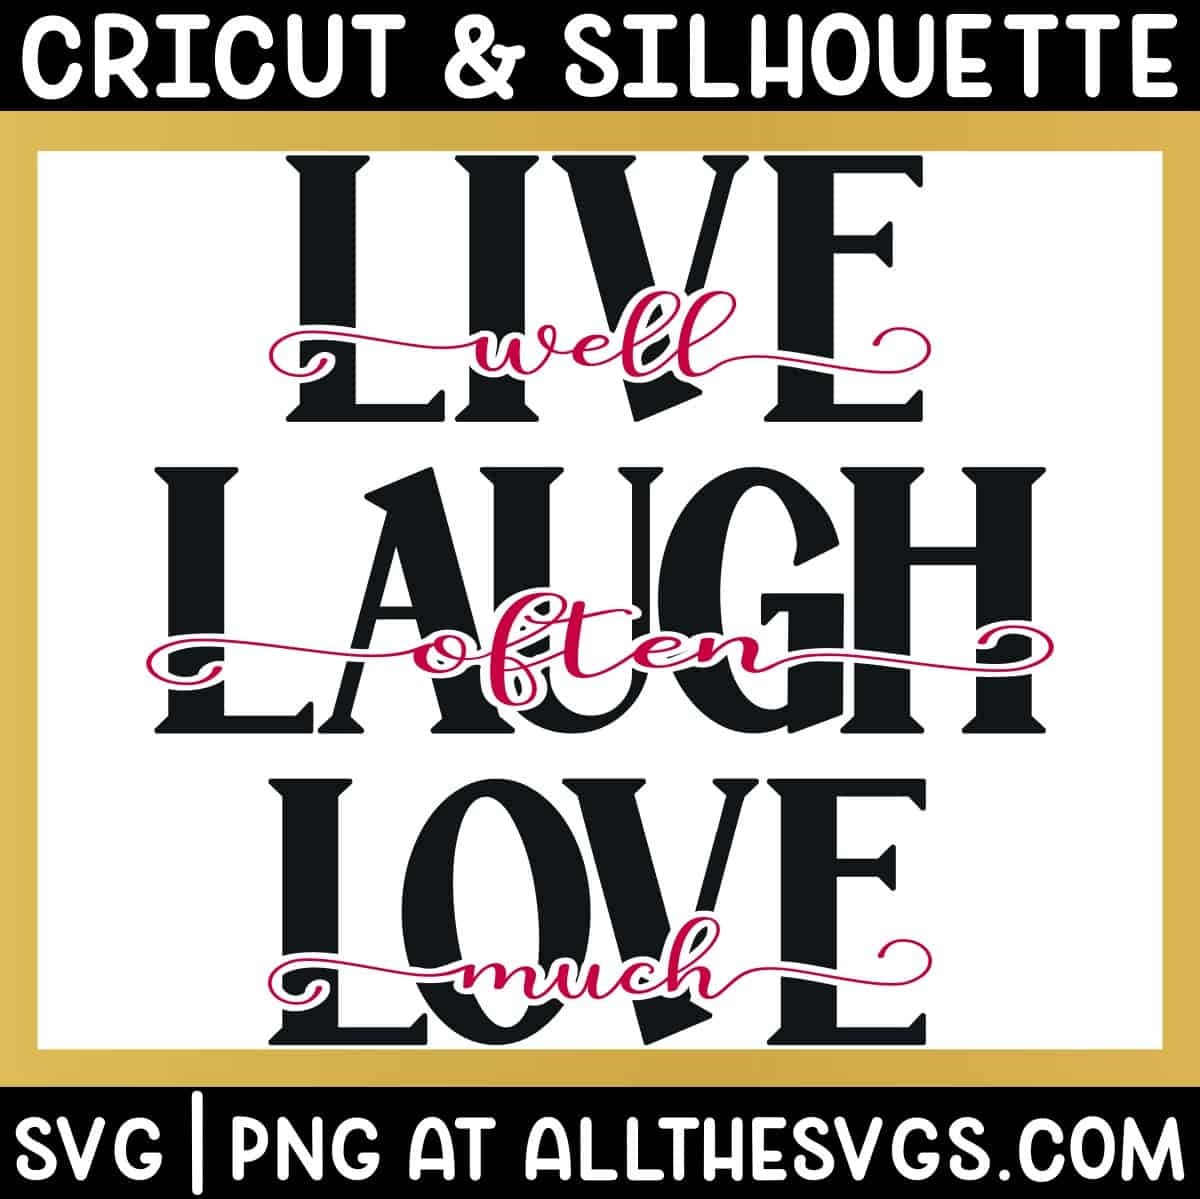 live, laugh, love in bold caps, well, often, much in cursive with heart glyphs as knockout